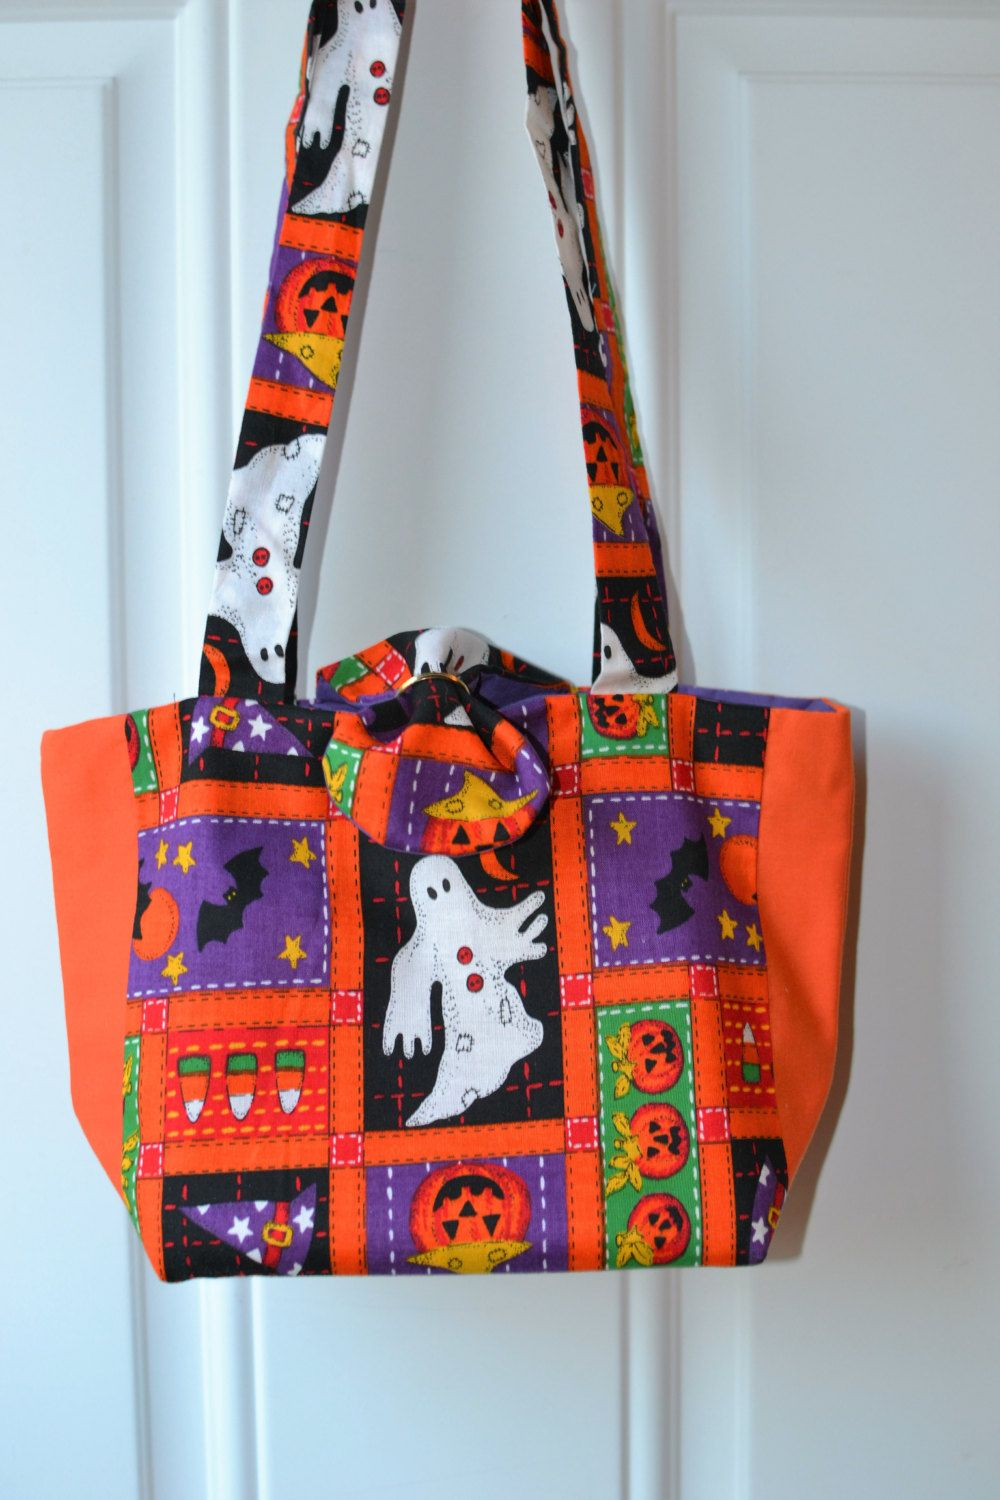 orange halloween handbag halloween ghost shoulder bag halloween bag tote handmade handbag - Halloween Handbag